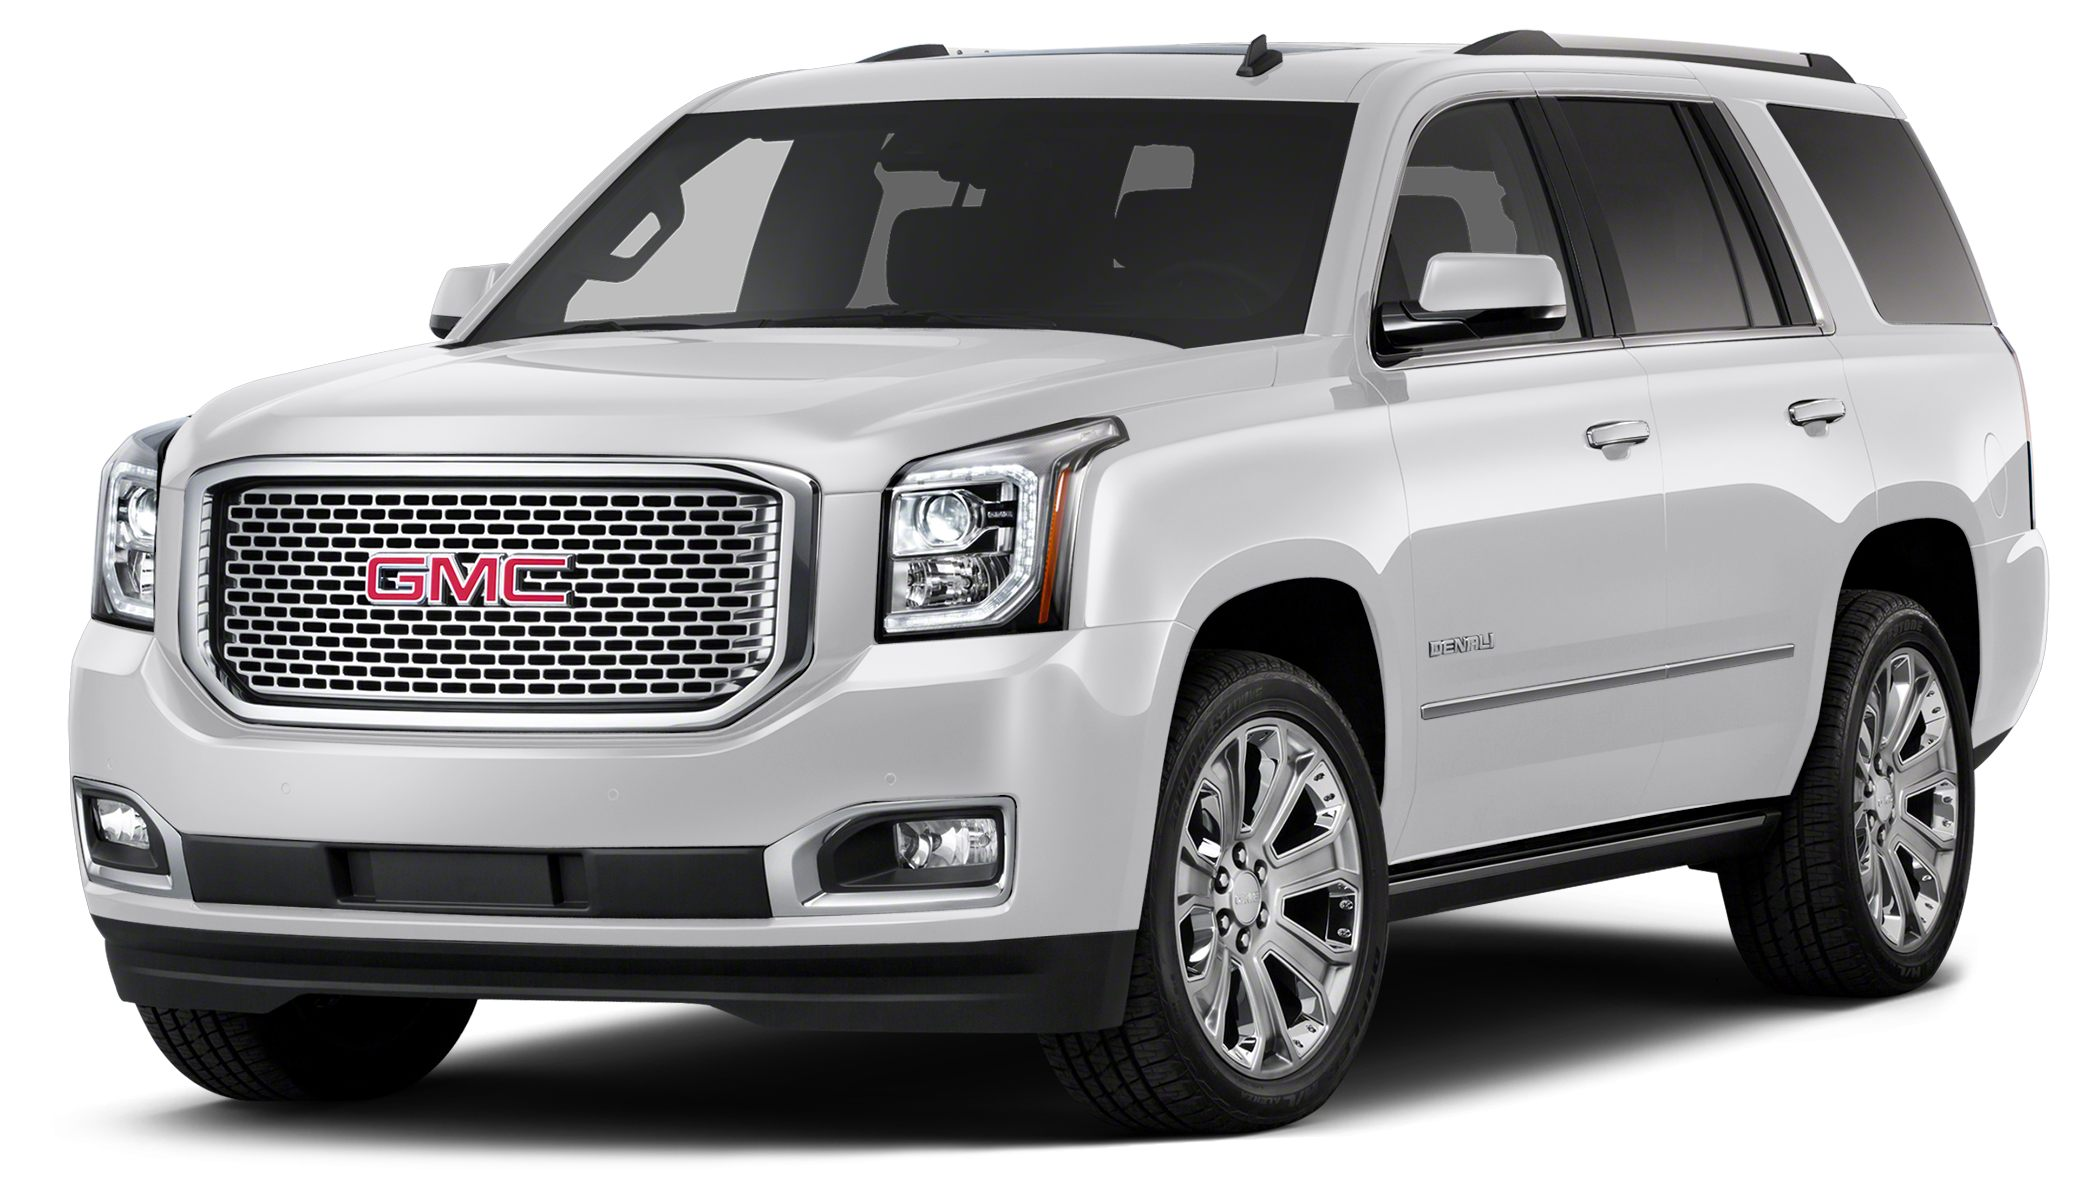 2016 GMC Yukon Denali OPTION PACKAGES OPEN ROAD PACKAGE includes additional 9 months of Sir